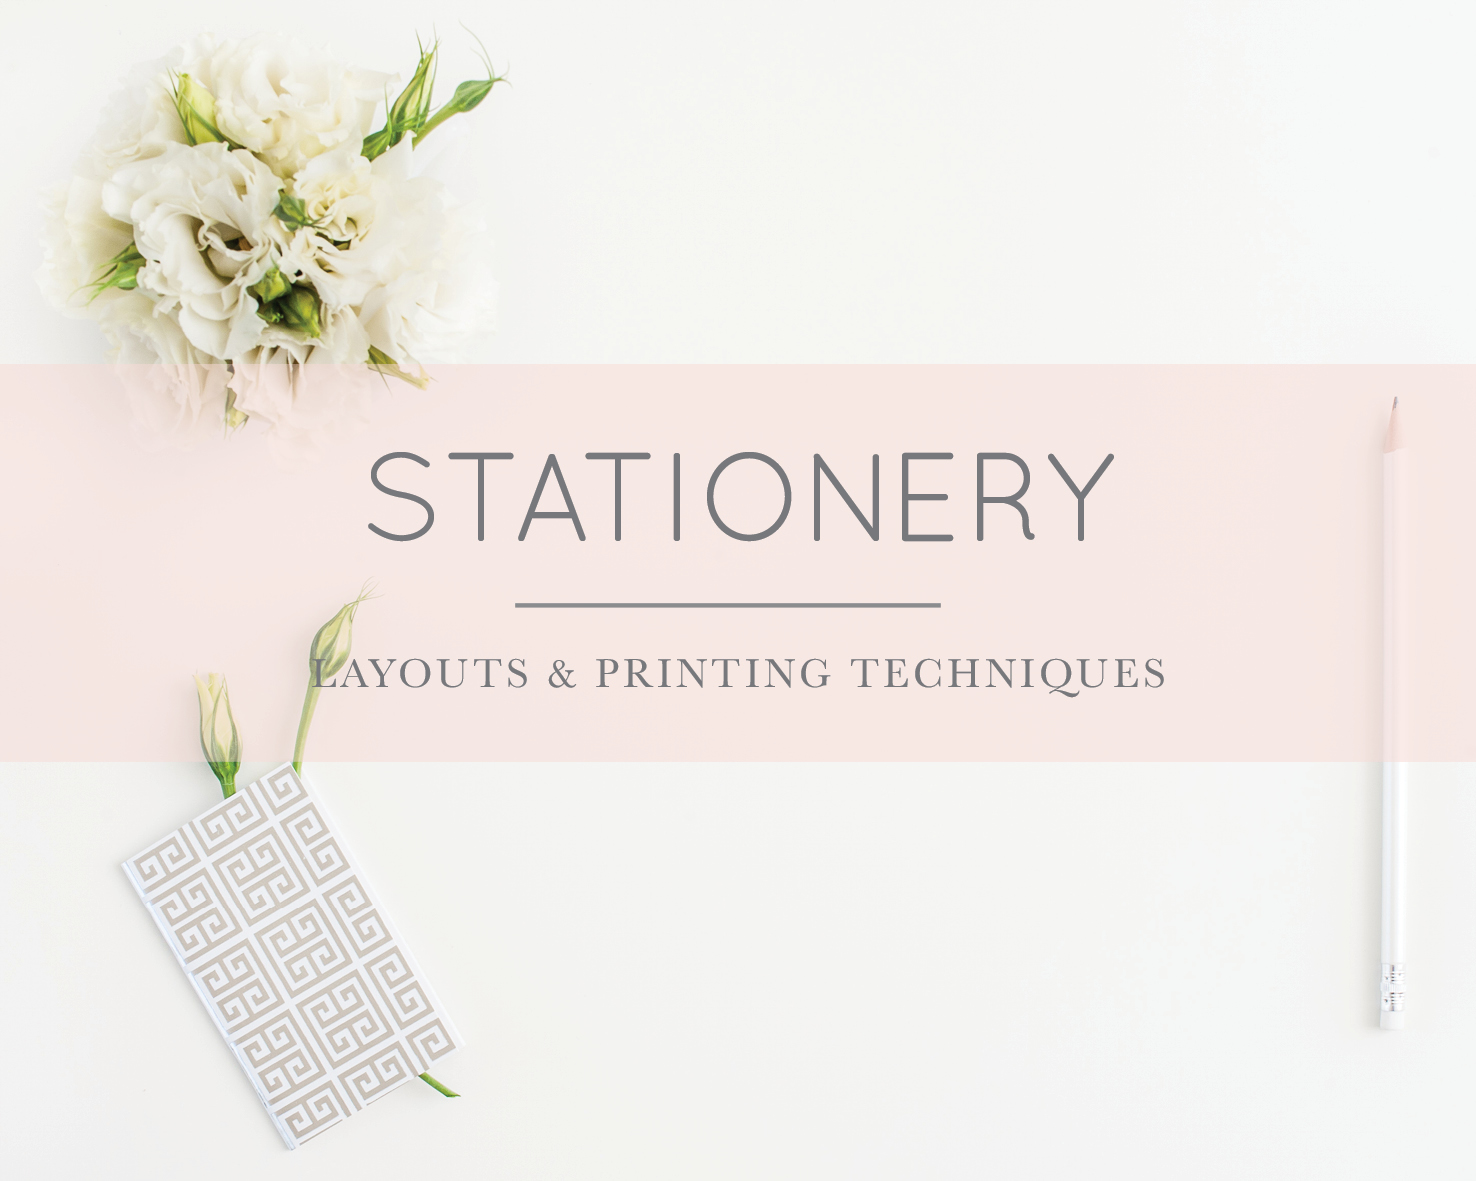 The White Letter Stationery